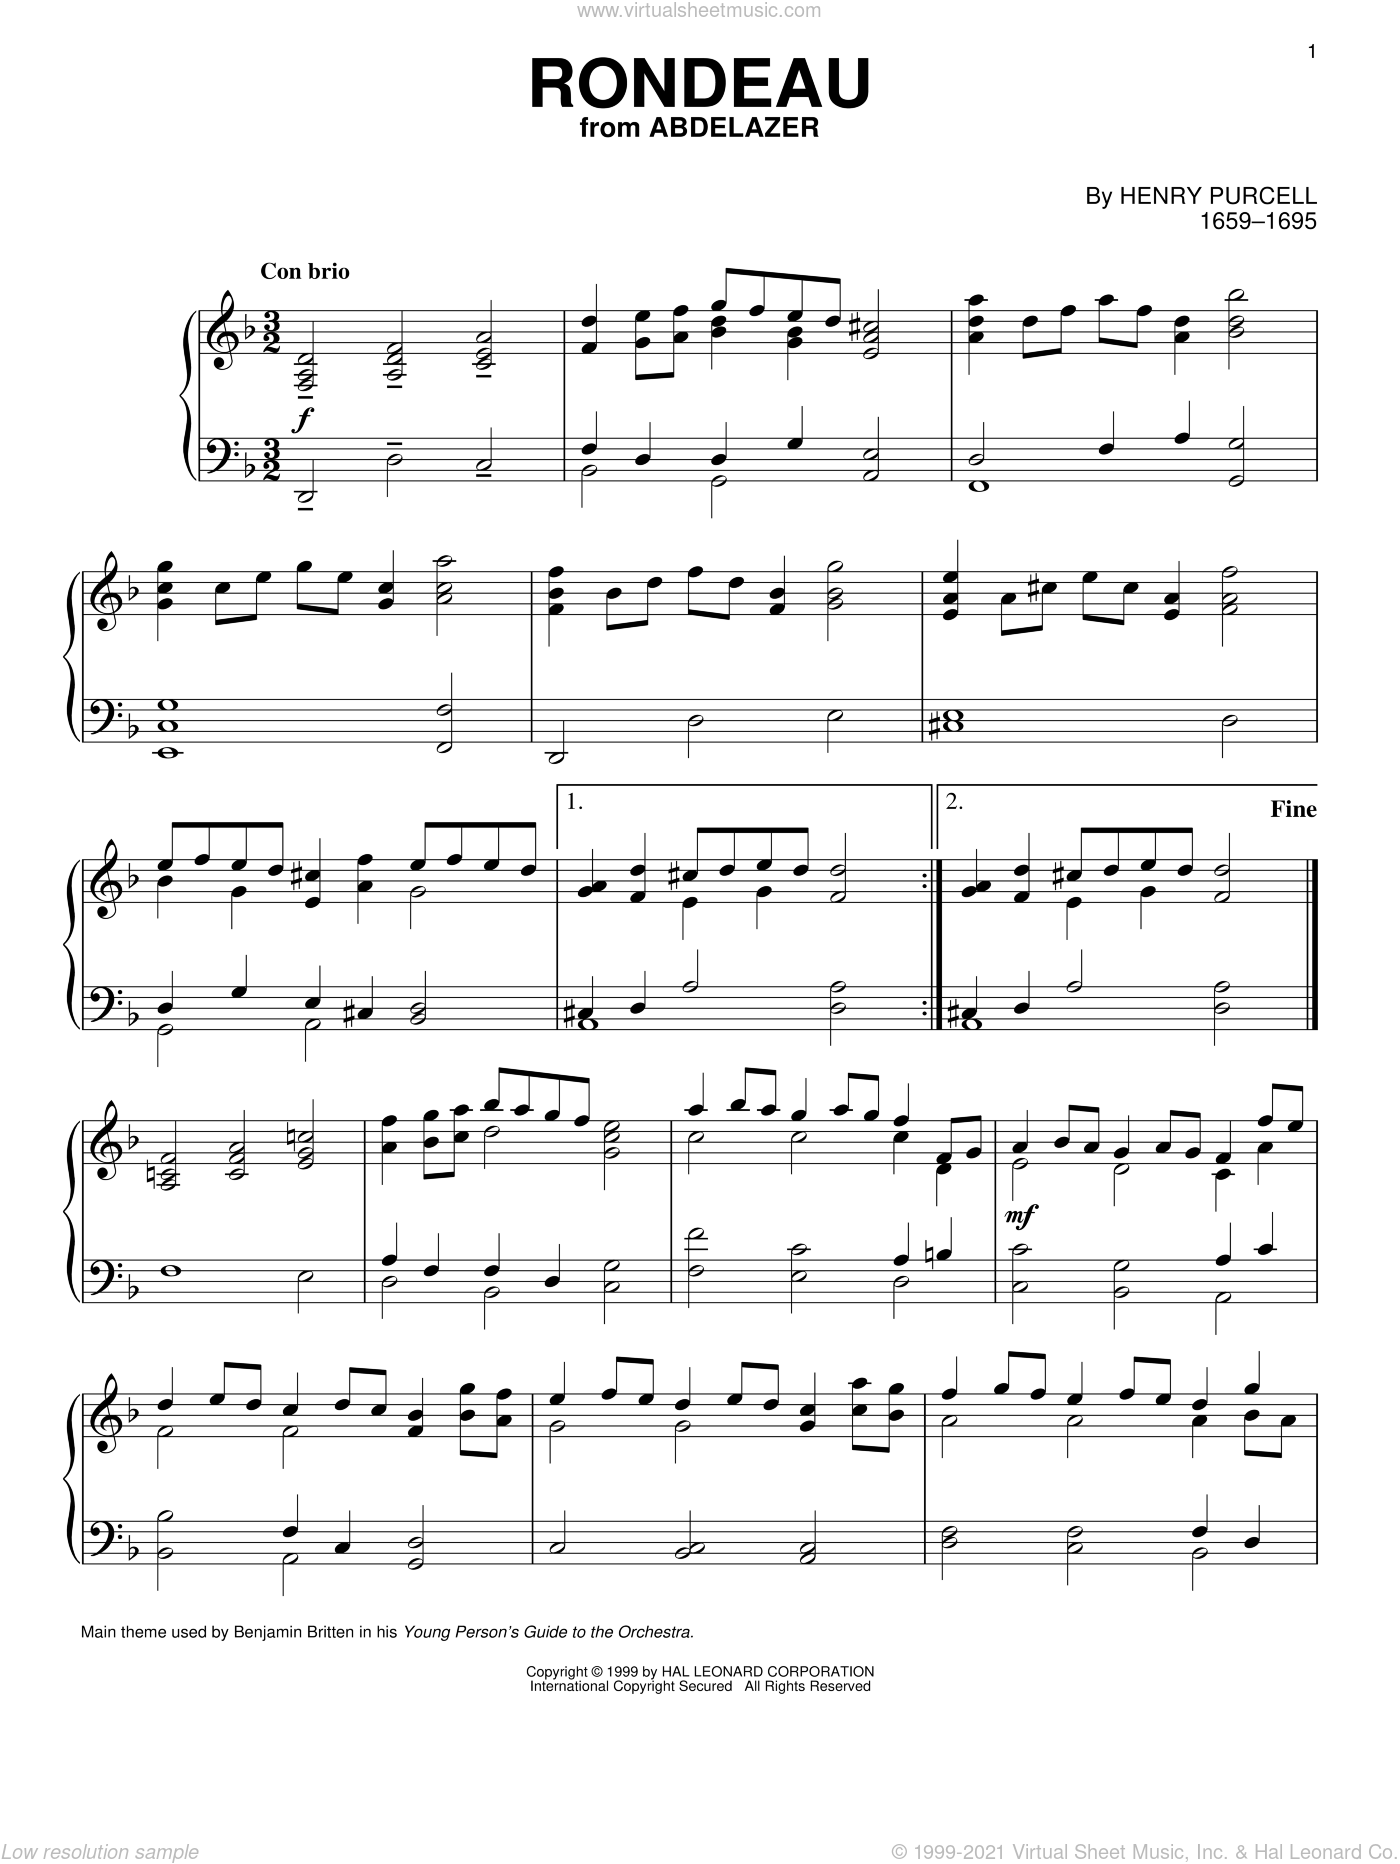 Rondeau sheet music for piano solo by Henry Purcell, classical score, intermediate skill level